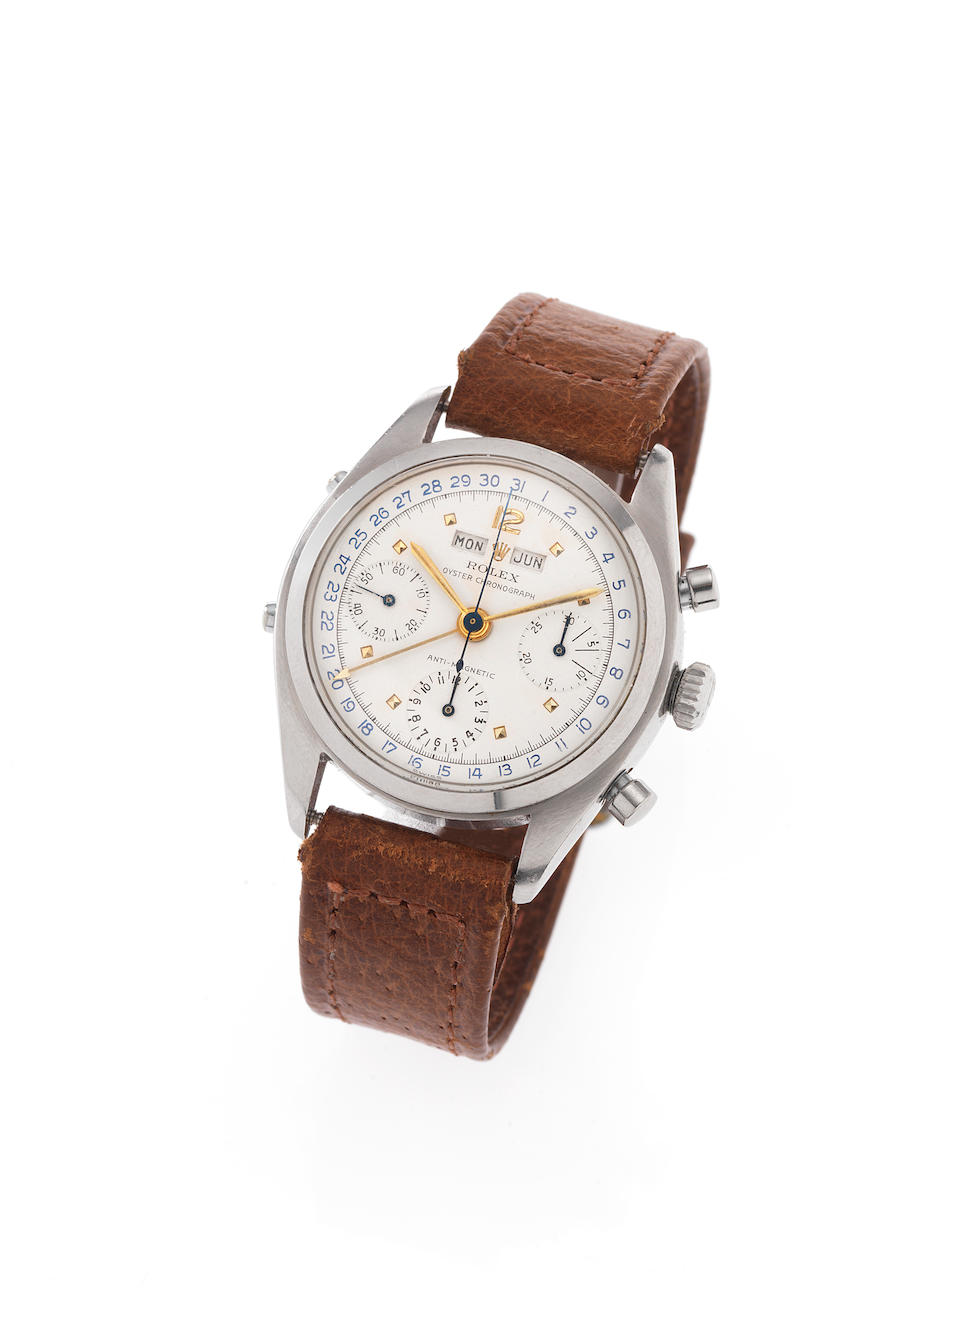 Rolex. A very fine and rare stainless steel triple calendar chronograph wristwatch together with Rolex box and rare Guarantee papersOyster Chronograph, Anti-Magnetic, Ref.6036, Case No.917856, Made in 1952.